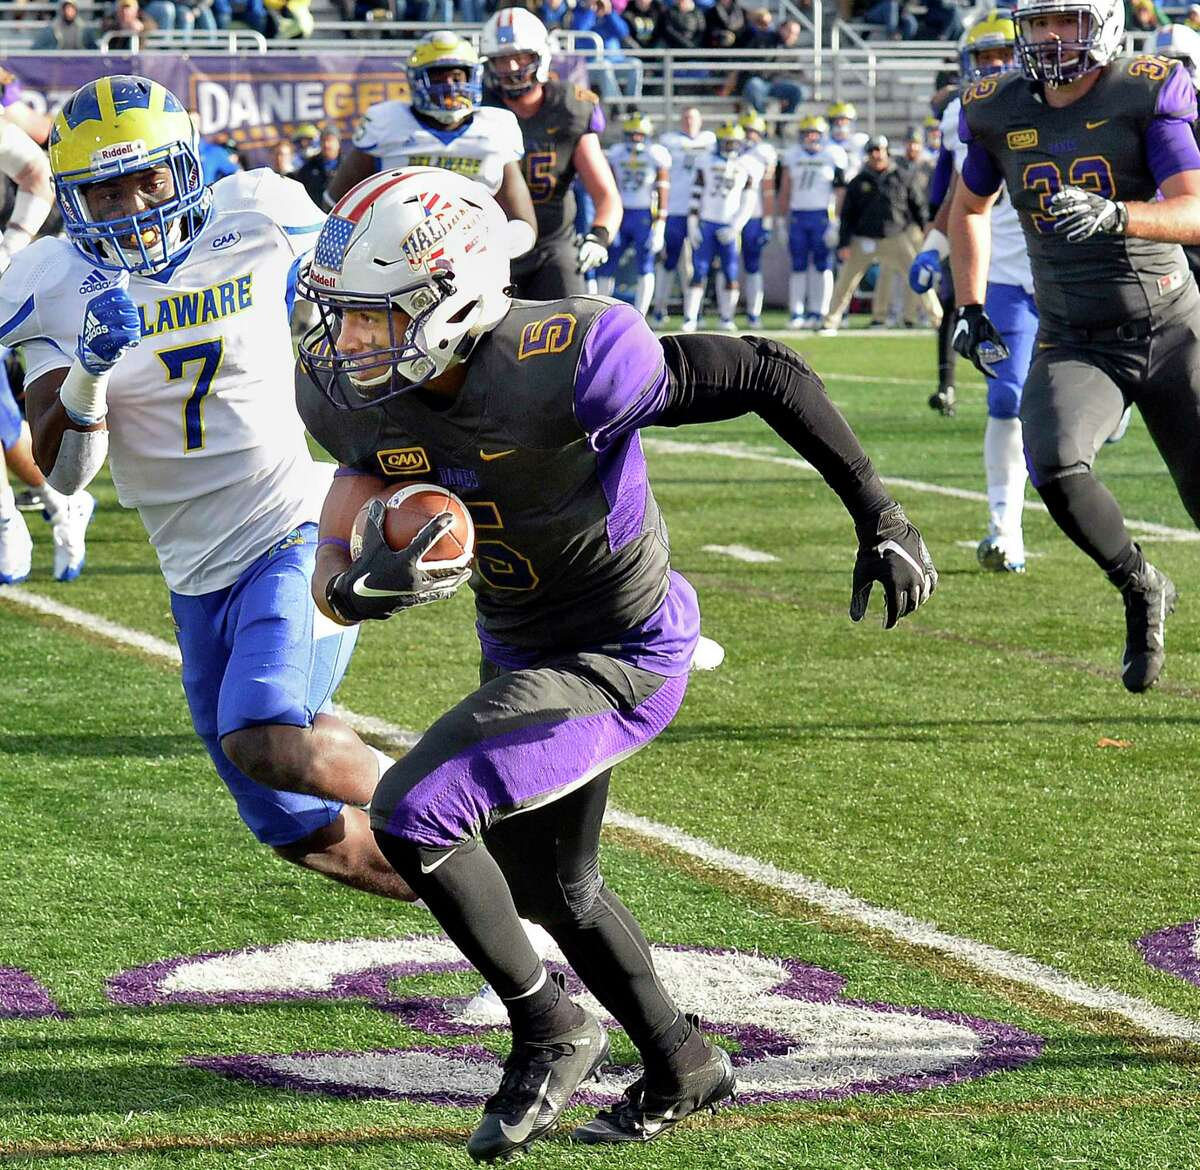 UAlbany's Dev Holmes said he has never really seen eye-to-eye with offensive coordinator Joe Davis, and says Davis has treated him differently since he returned to the team. (John Carl D'Annibale/Times Union archive)